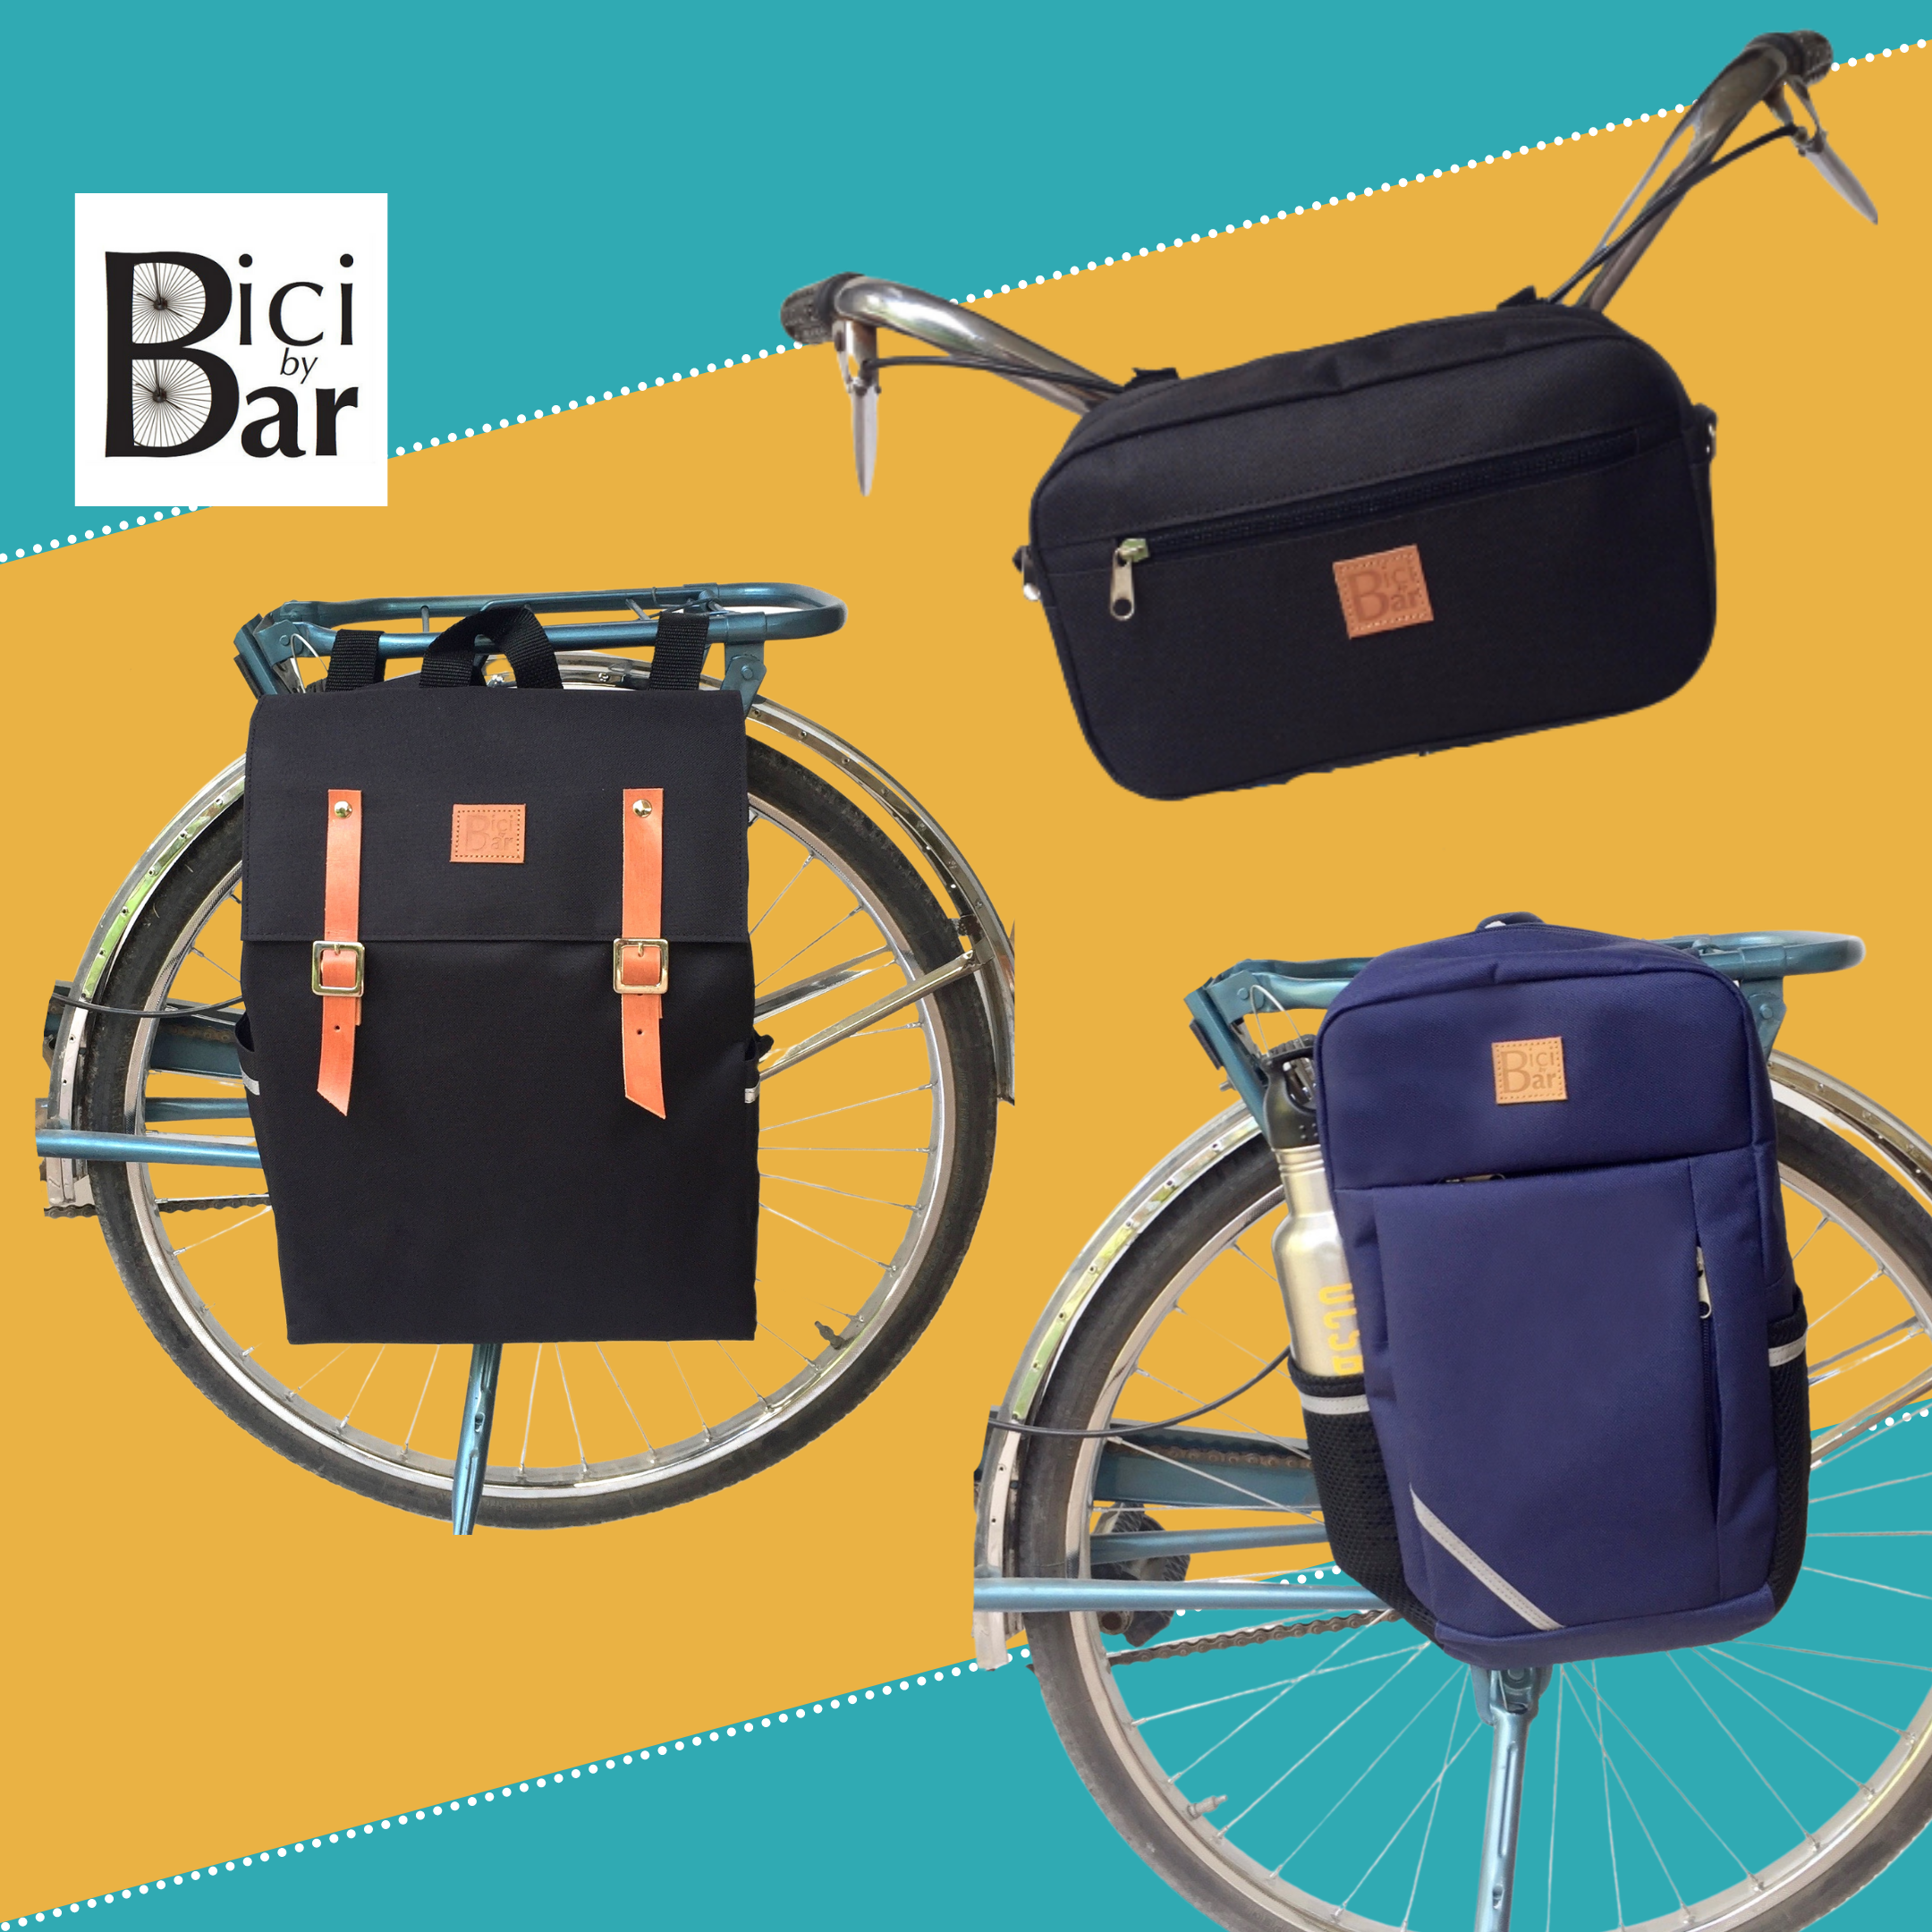 A square image containing 3 images. At the top, a black Bike Pack Handlebar Bag is displayed on a set of handlebars. Top the left, a Gaucho Black Waterproof Backpack Pannier displayed on a wheel. To the right, a blue Sports Pannier displayed on a wheel. The BiciBar logo is displayed.